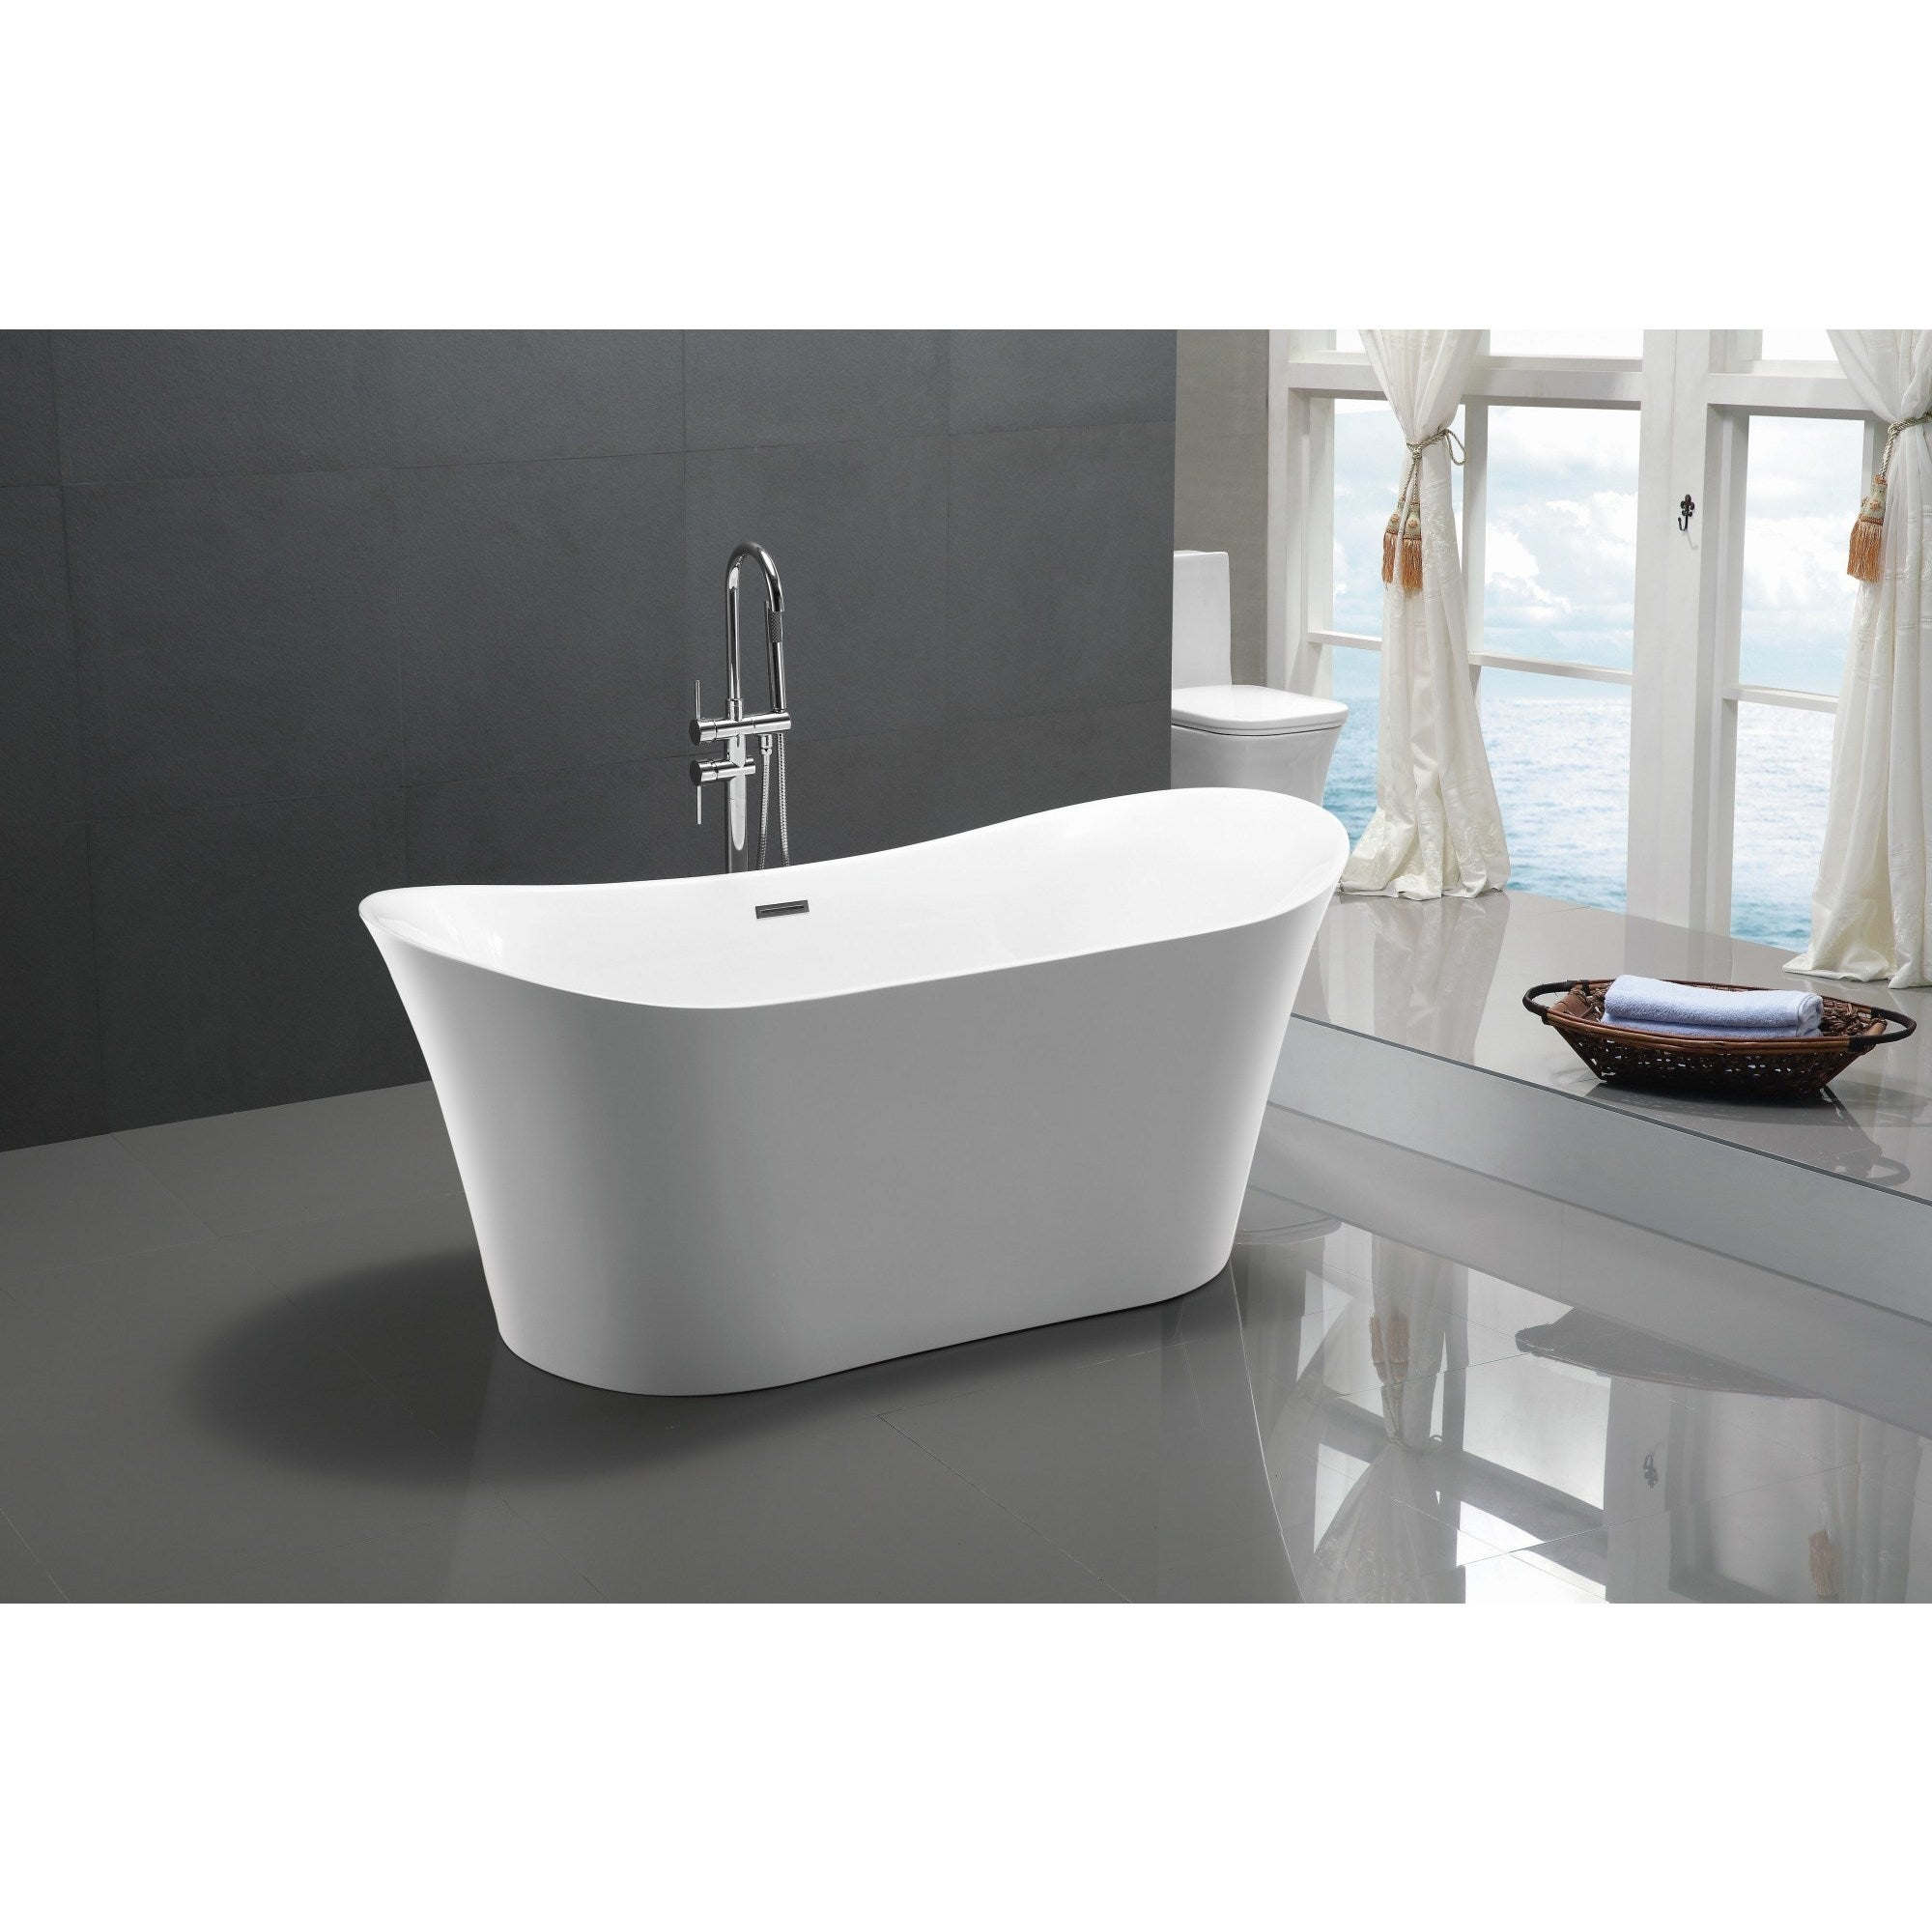 Ordinaire Freestanding Bathtub In White   Free Shipping Today   Overstock.com    16049239